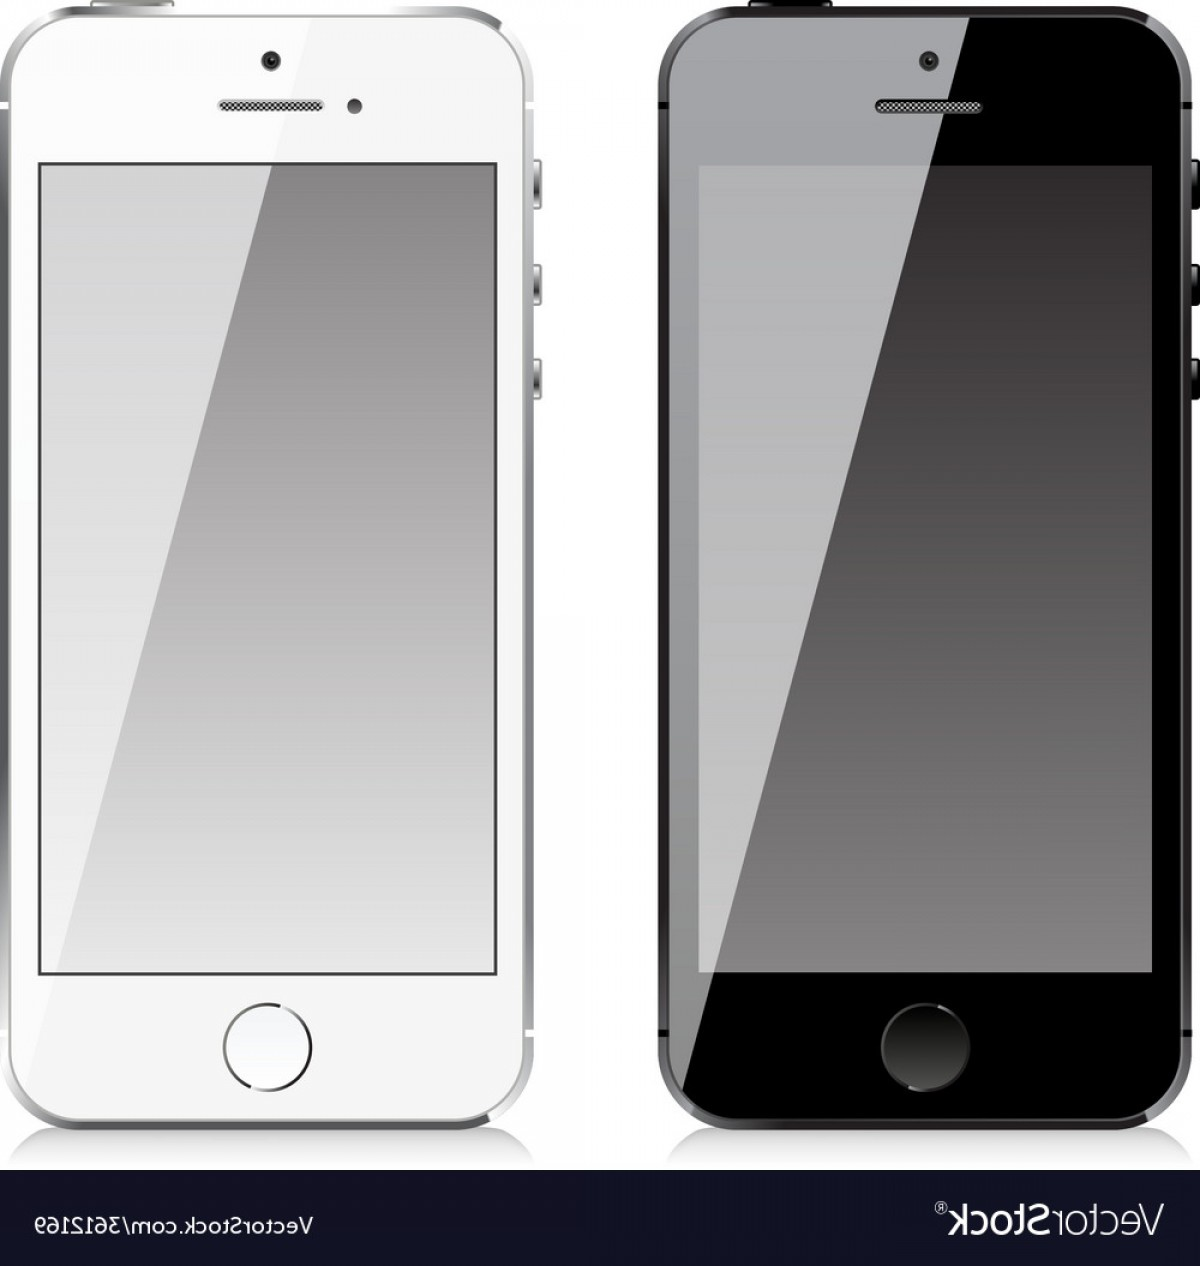 IPhone Battery Vector Icons: Mobile Phone Similar To Iphone Style Vector